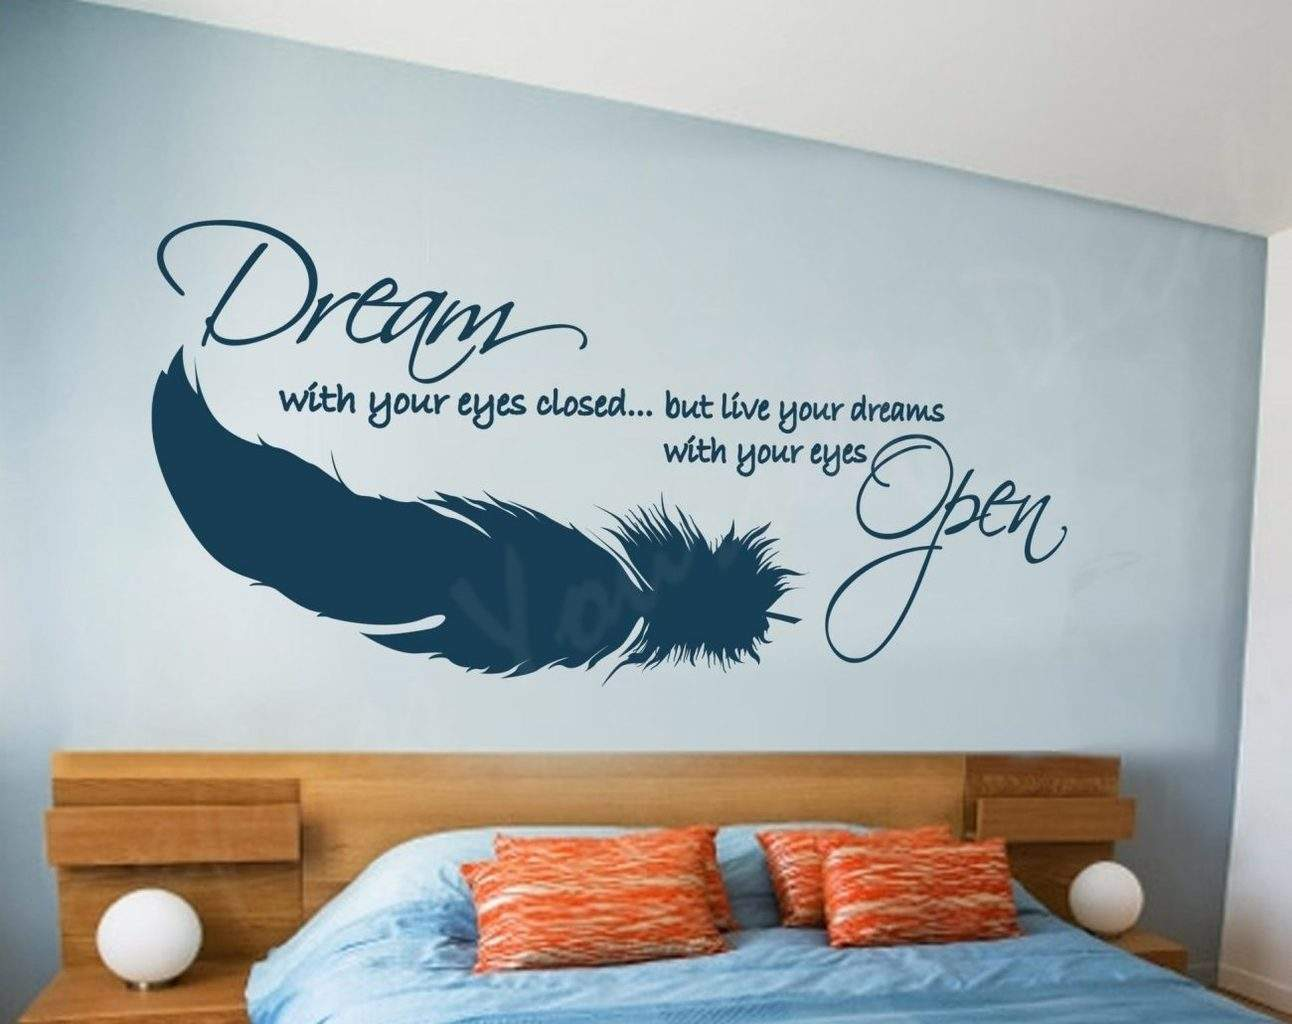 Dream with your eyes closed wall decal